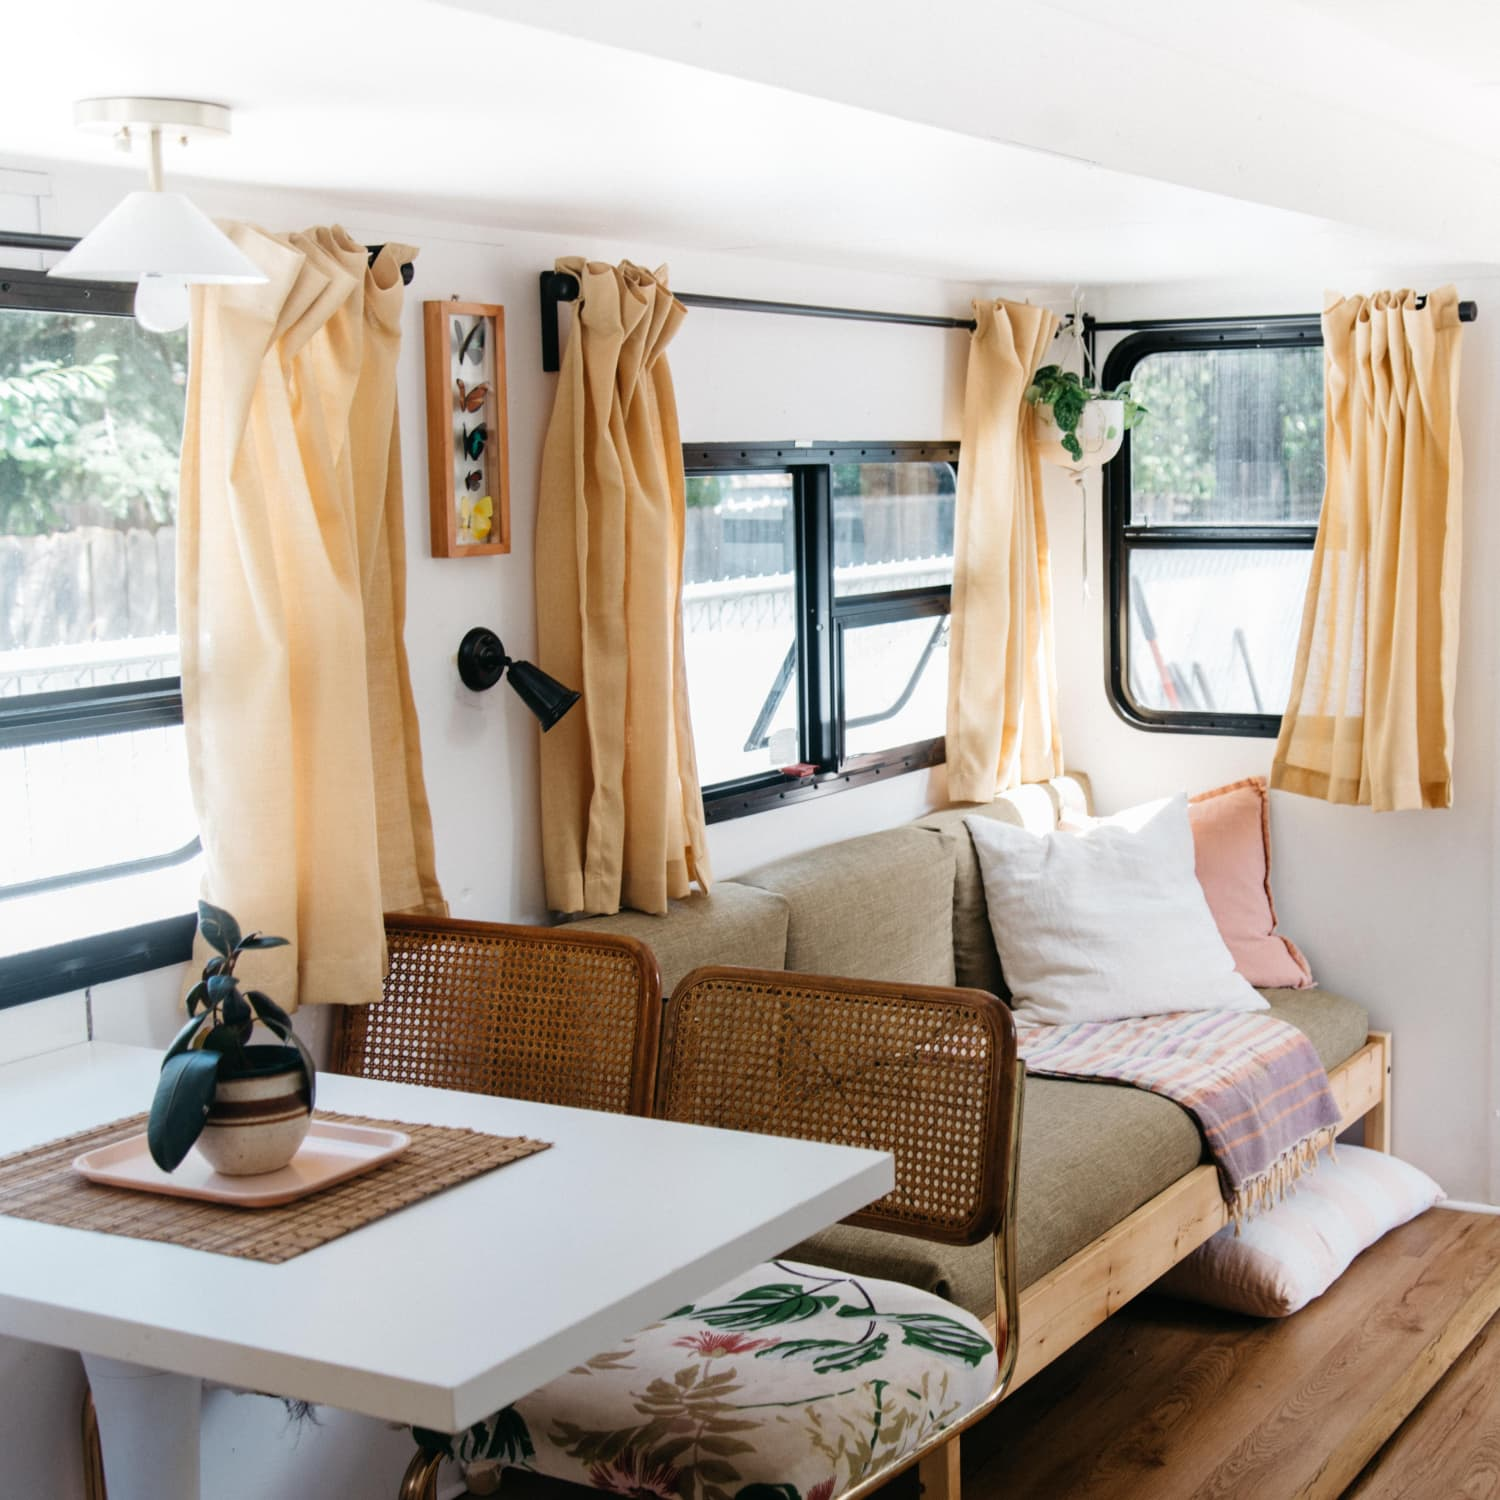 Tour a Tiny Home RV Remodeled Fifth Wheel Trailer | Apartment Therapy